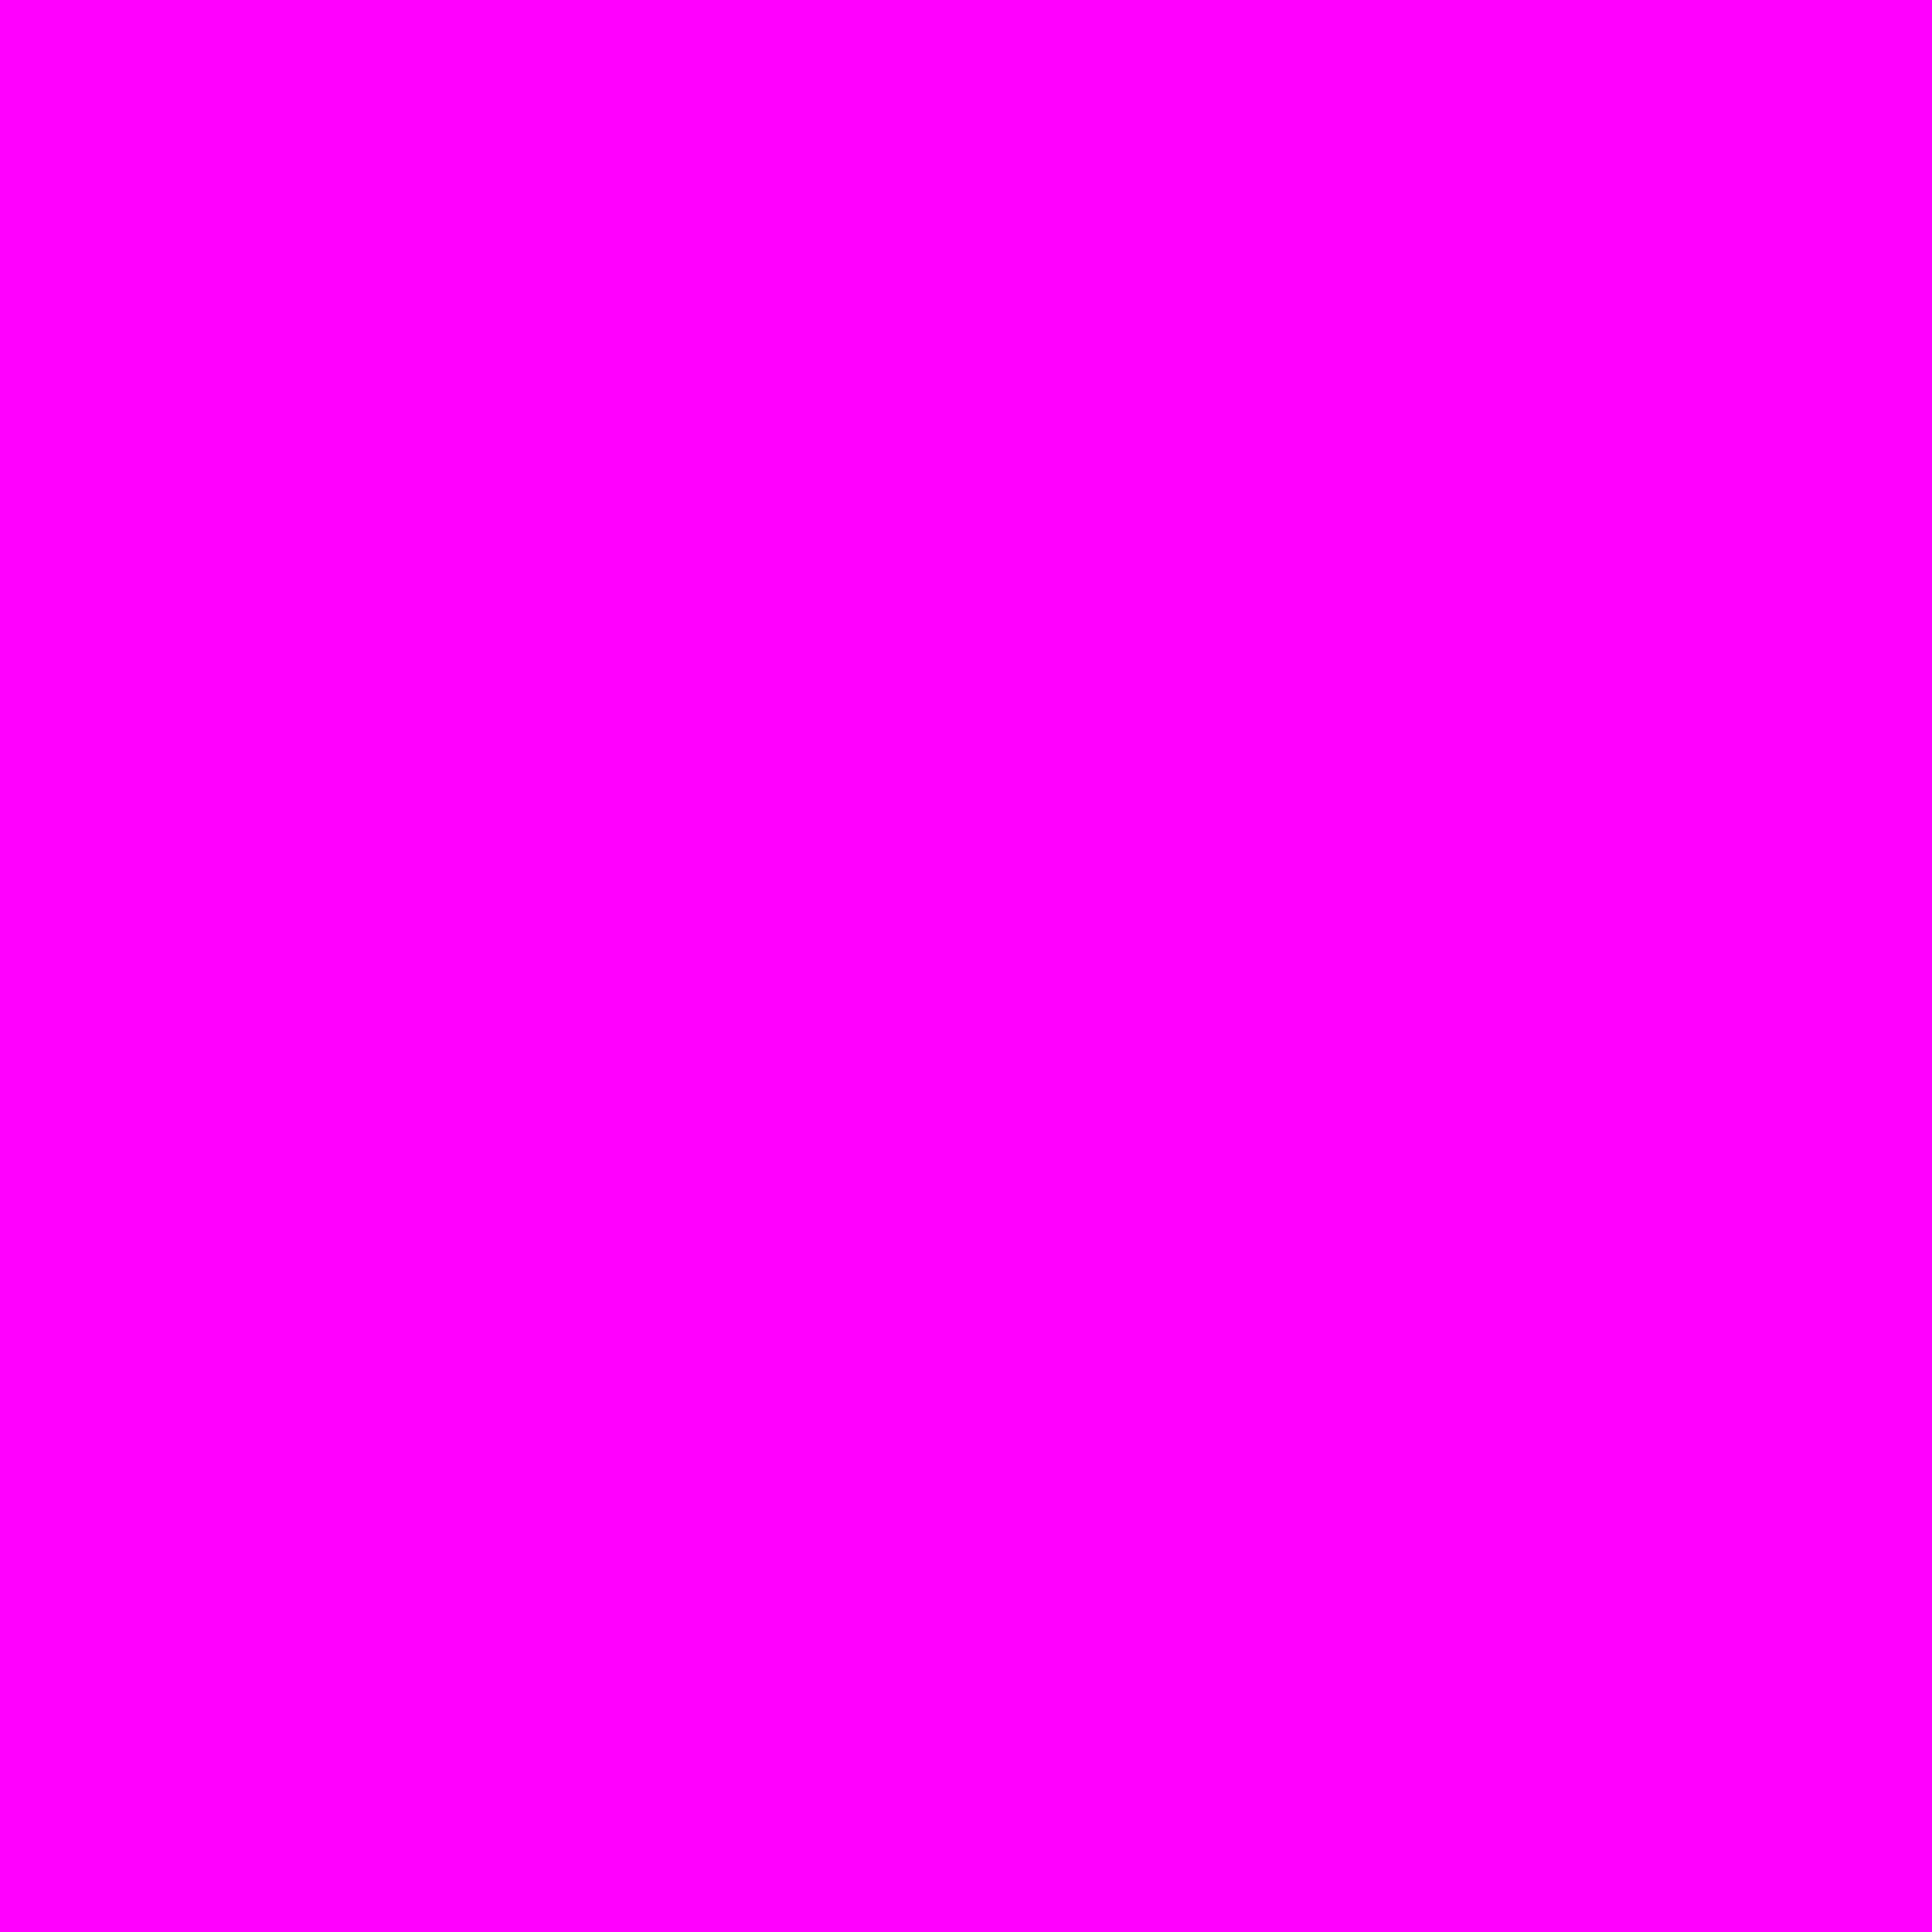 3600x3600 Fuchsia Solid Color Background